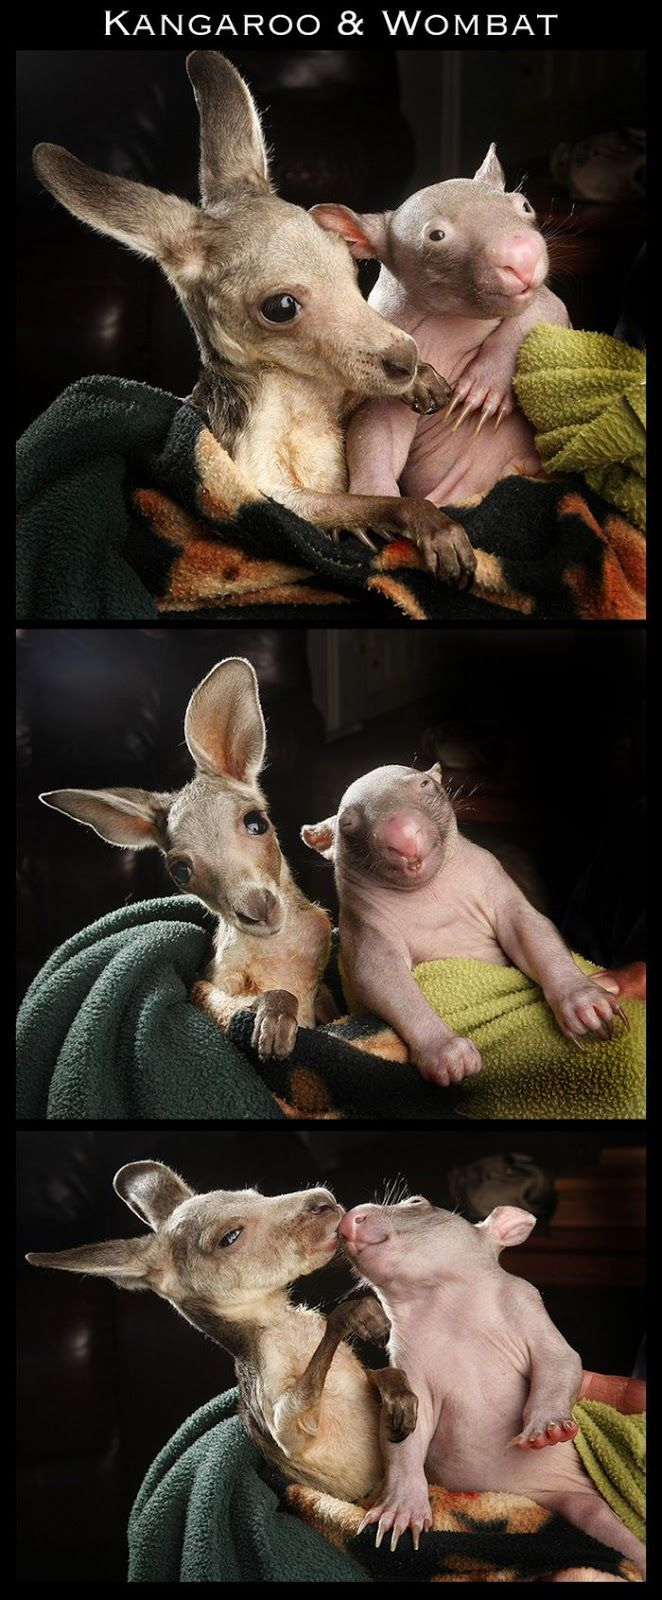 Kangaroo & Wombat shared a pouch at the zoo...now best friends